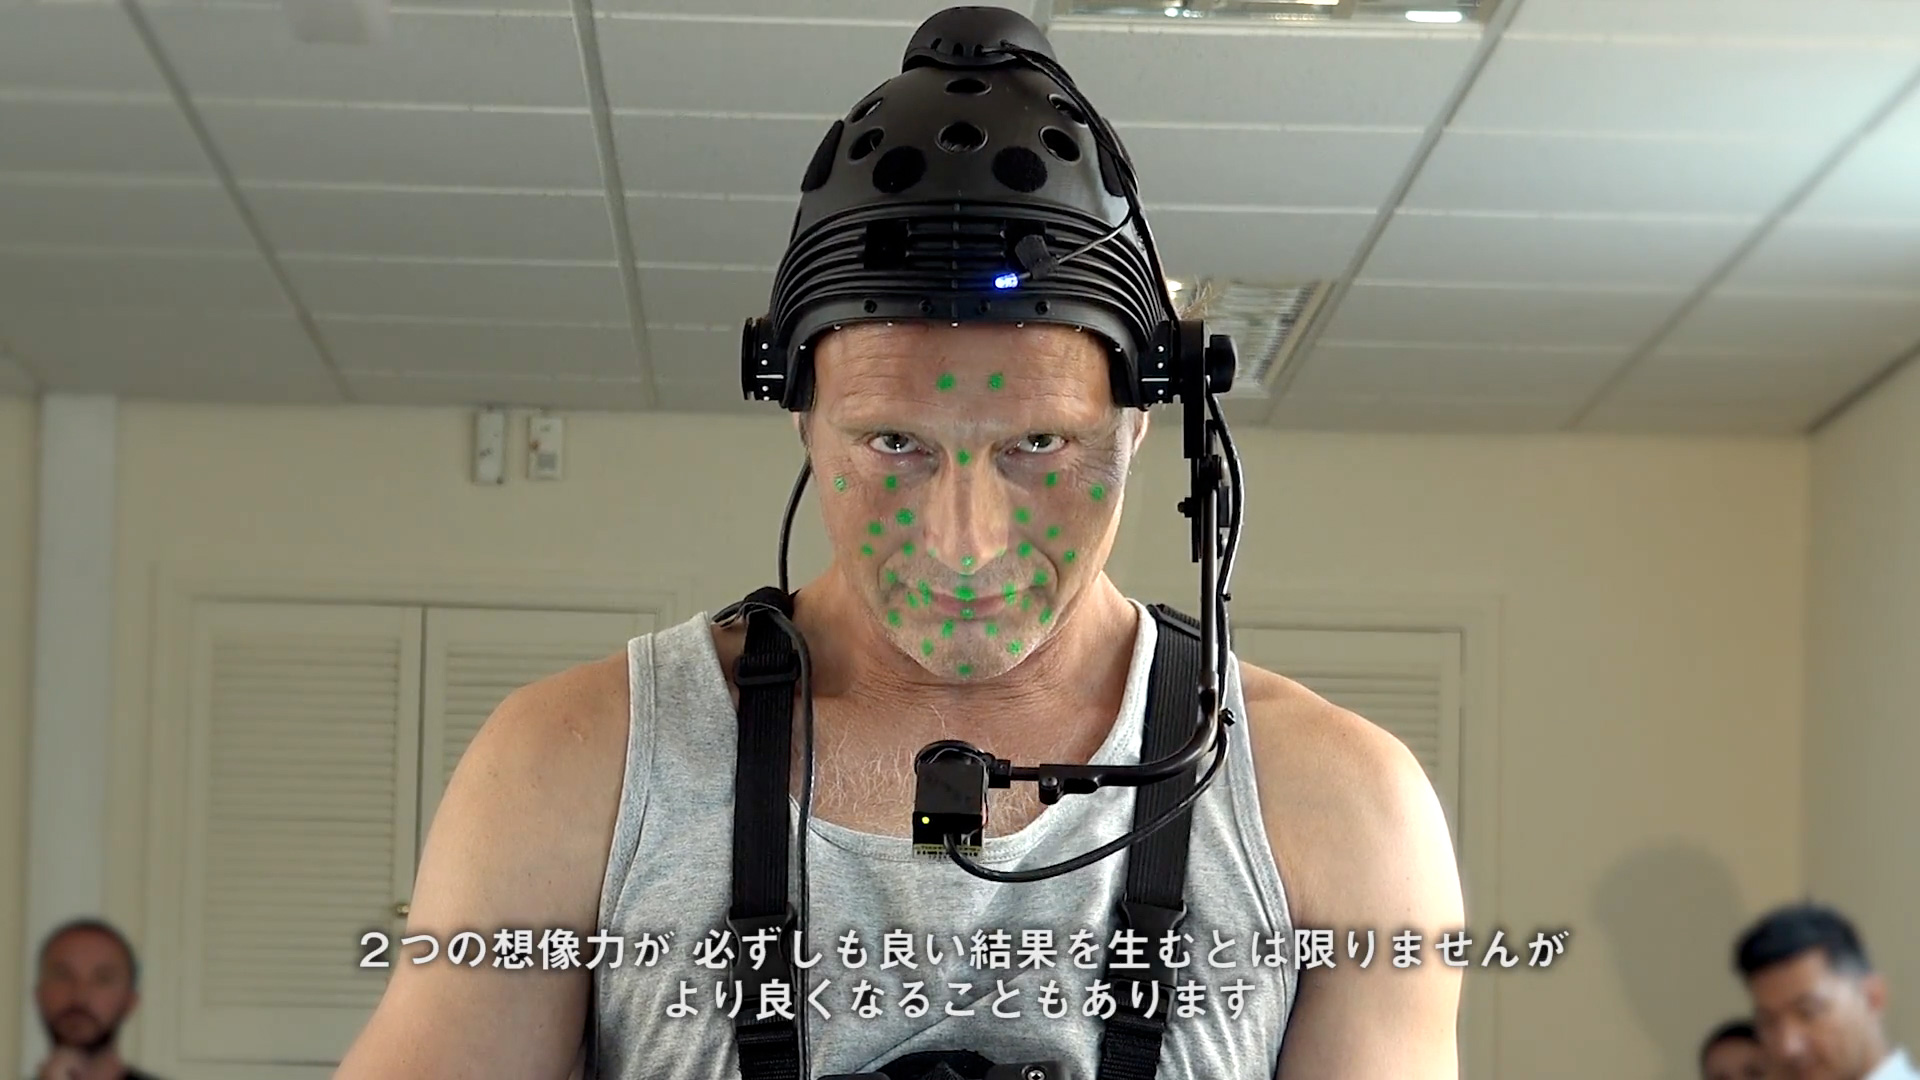 Kojima Talks About Death Stranding Hints At Character